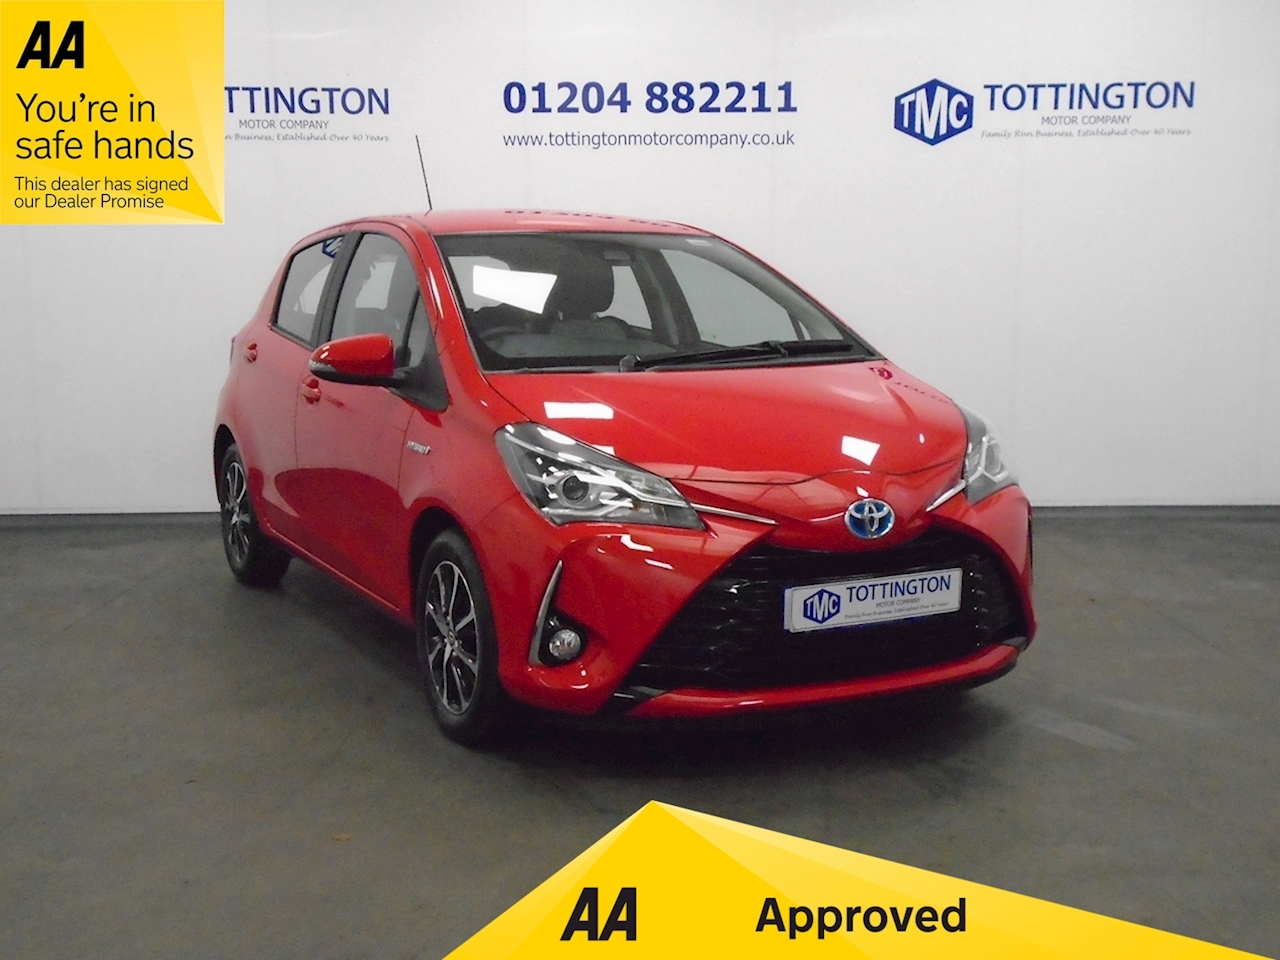 Toyota Yaris Icon Tech (Automatic/Hybrid) 1.5 5dr Hatchback Automatic Petrol Hybrid